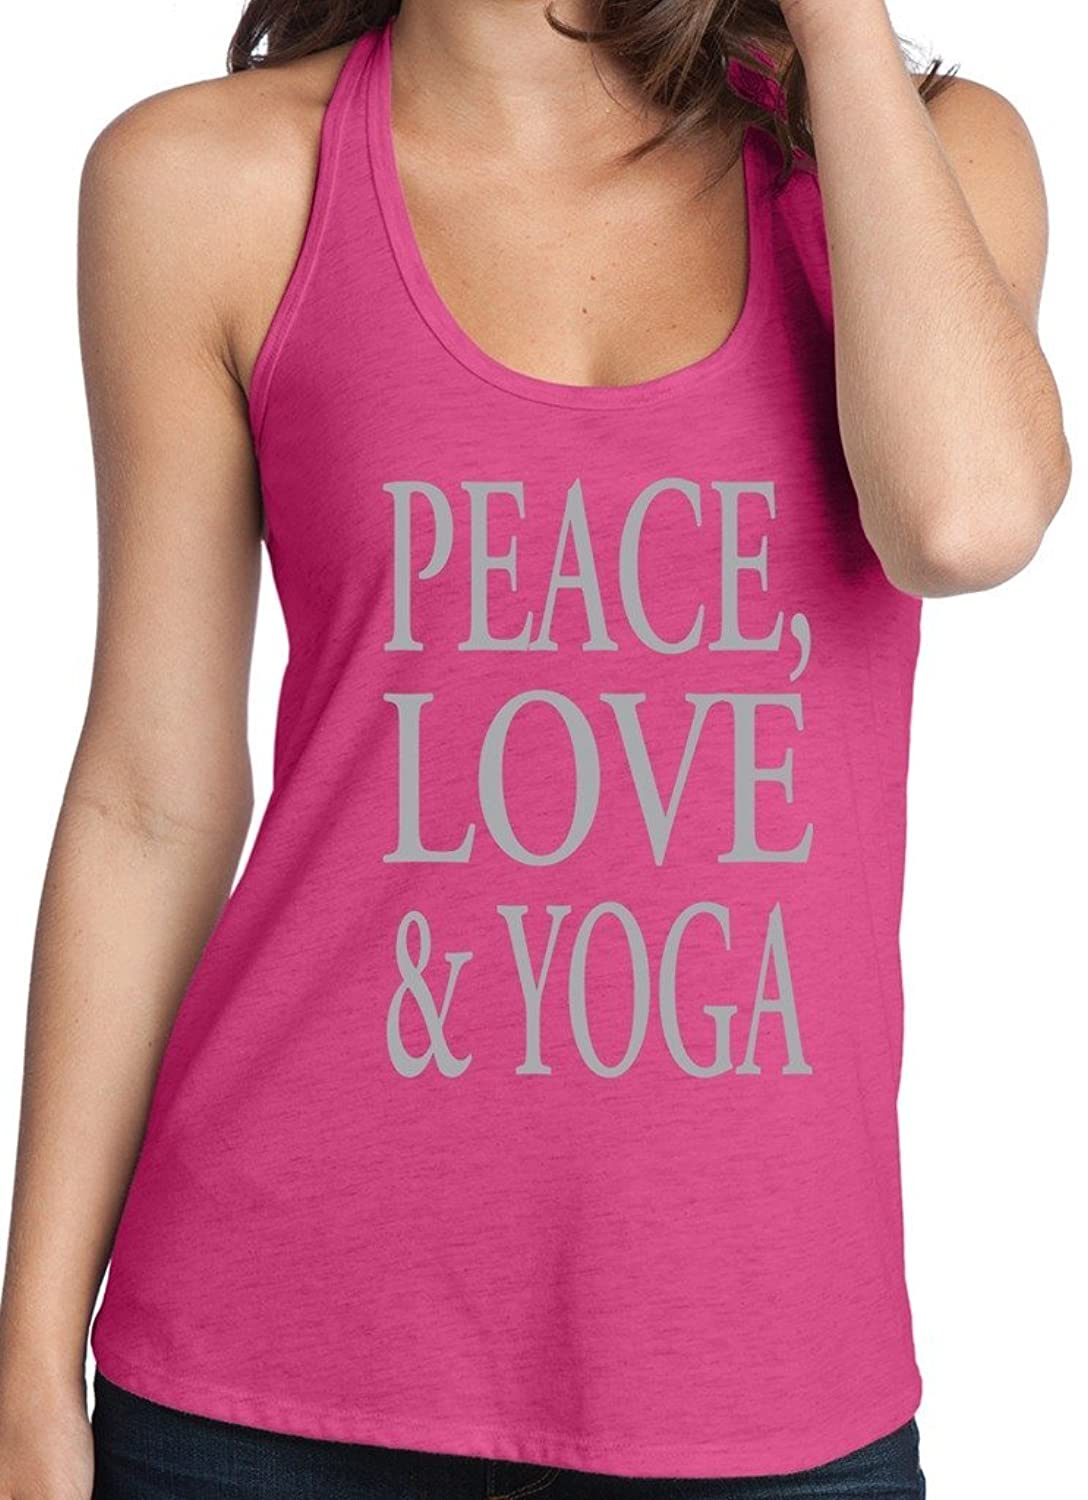 Yoga Clothing For You Ladies Peace, Love & Yoga T-back Tank Top